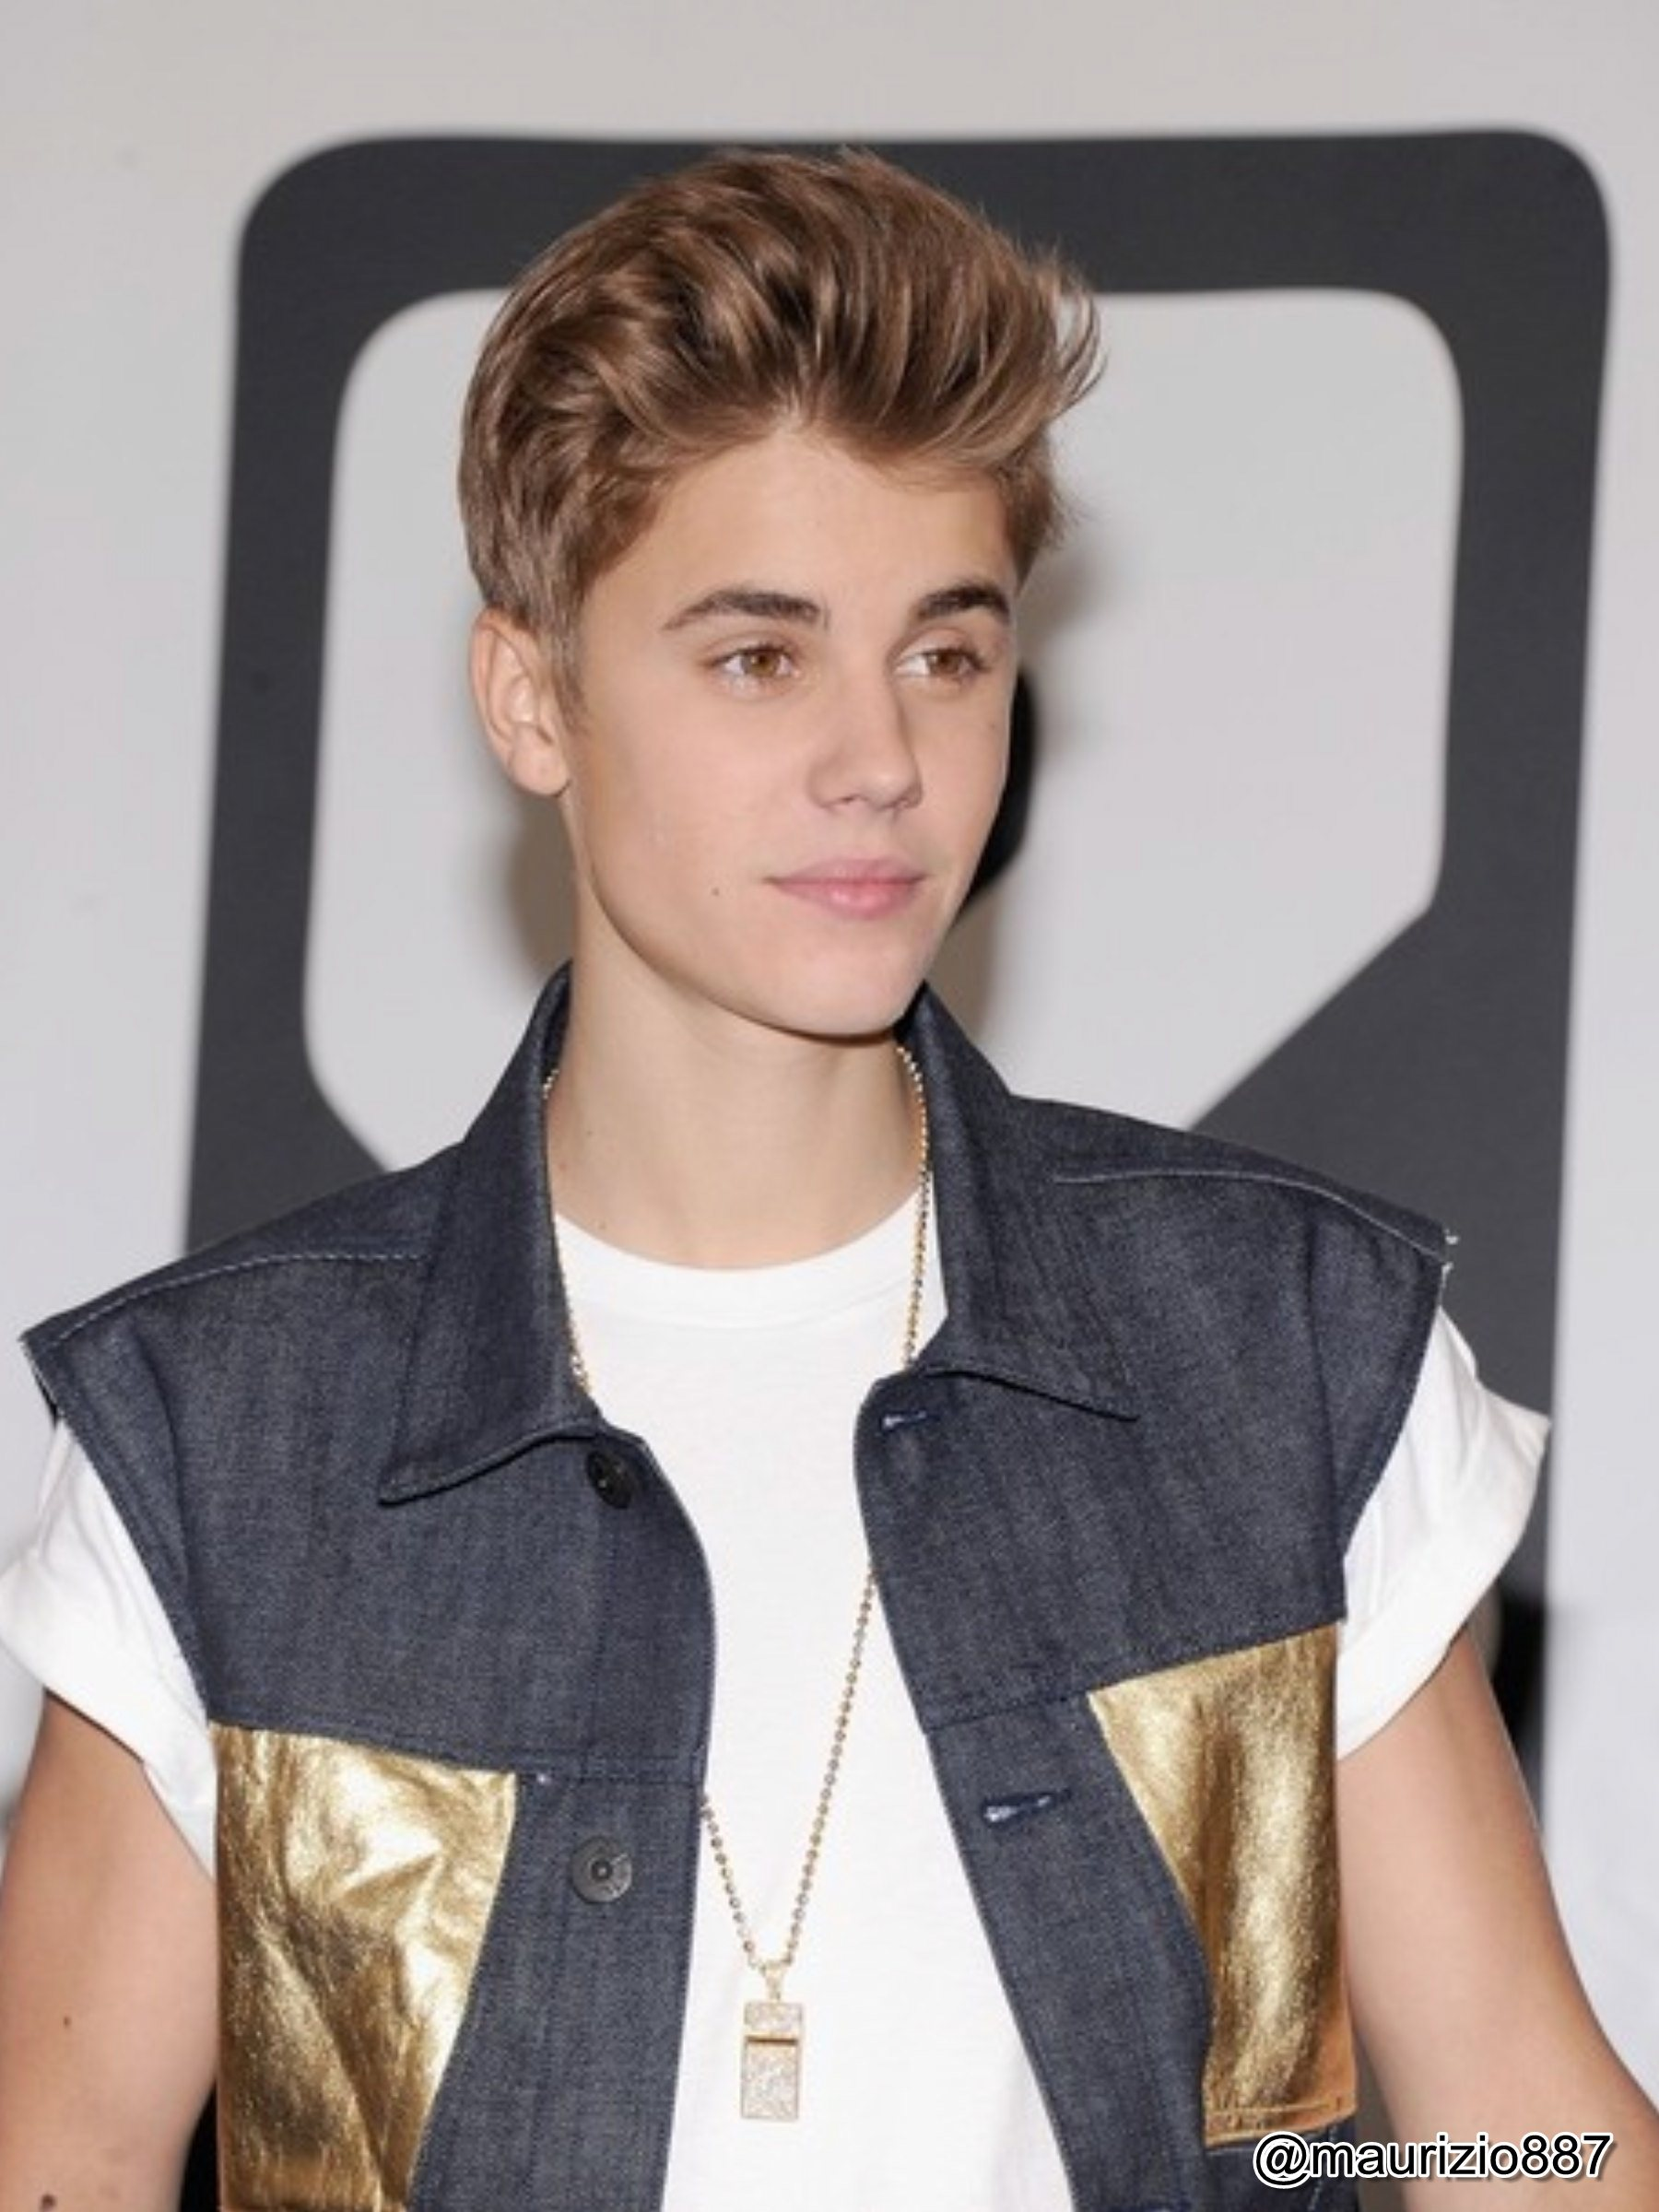 Justin Bieber Day' at J&R Music - Justin Bieber Photo ... джастин бибер музыка